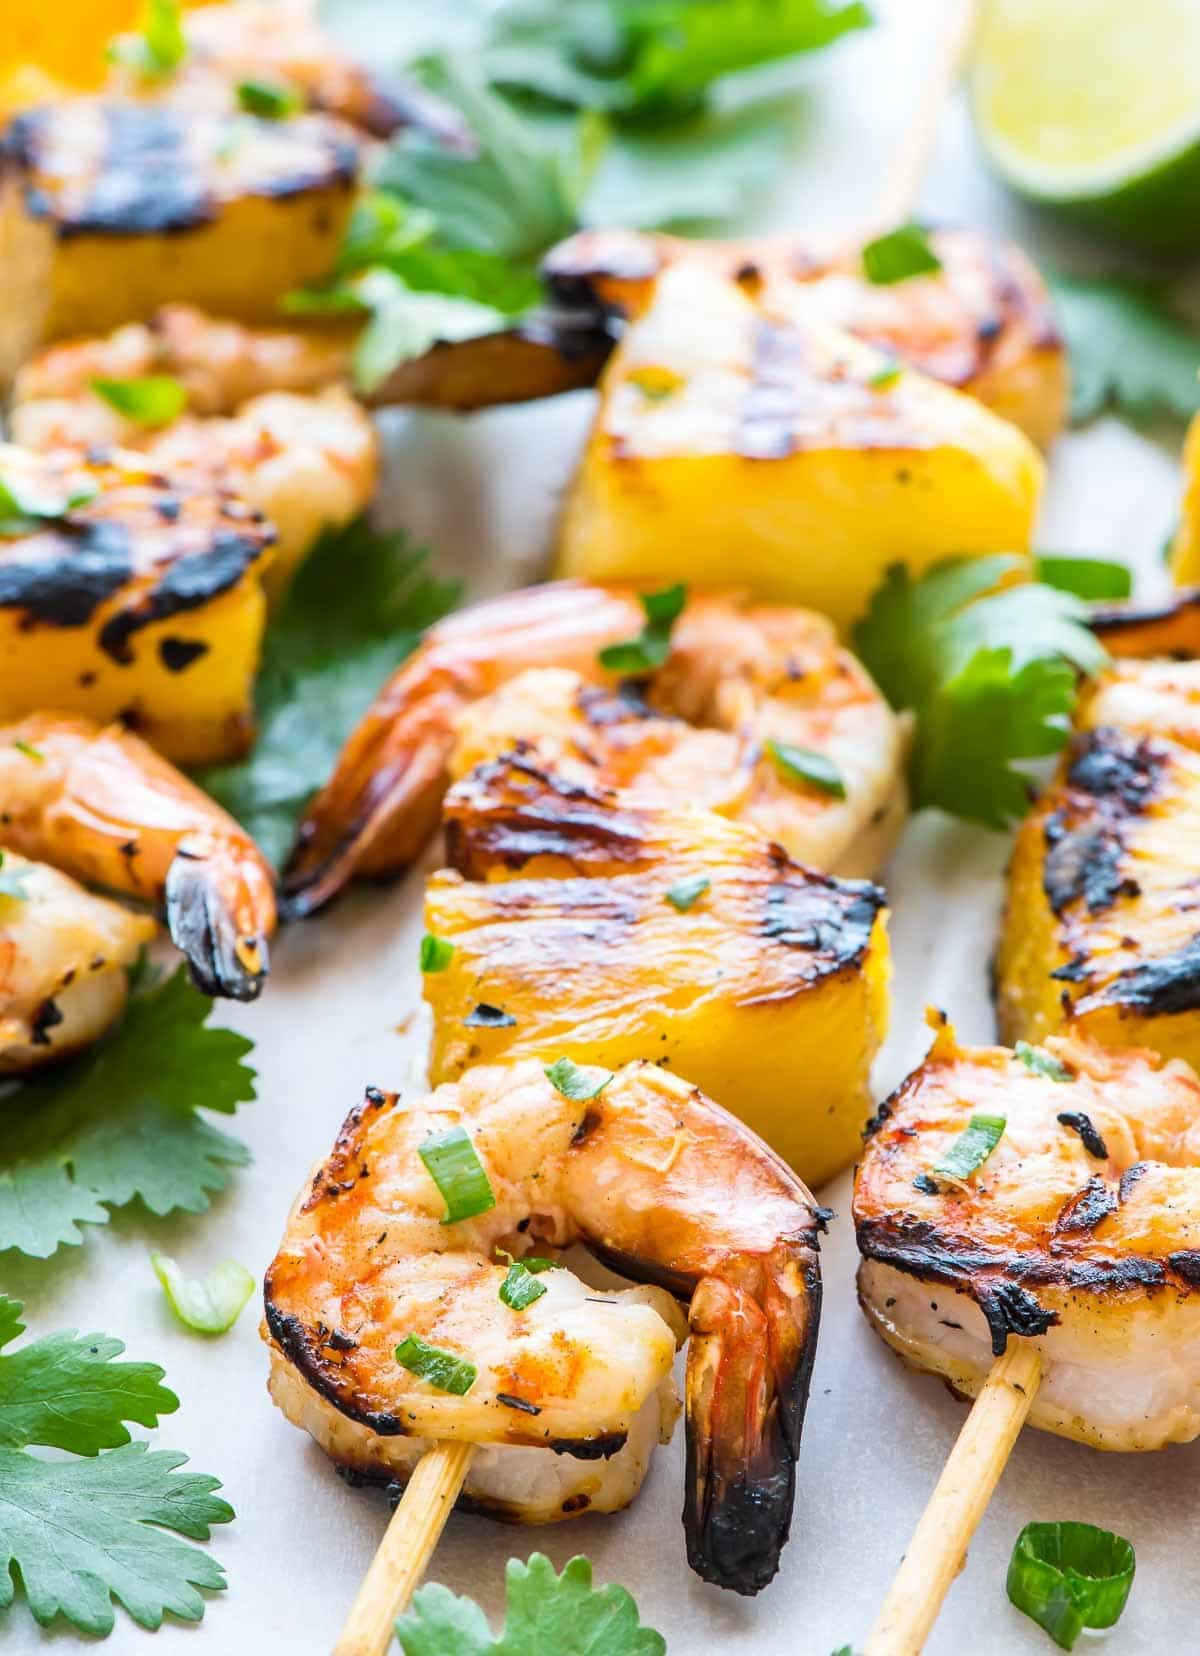 Shrimp Kabobs with Pineapple for the grill, oven, or stove top.